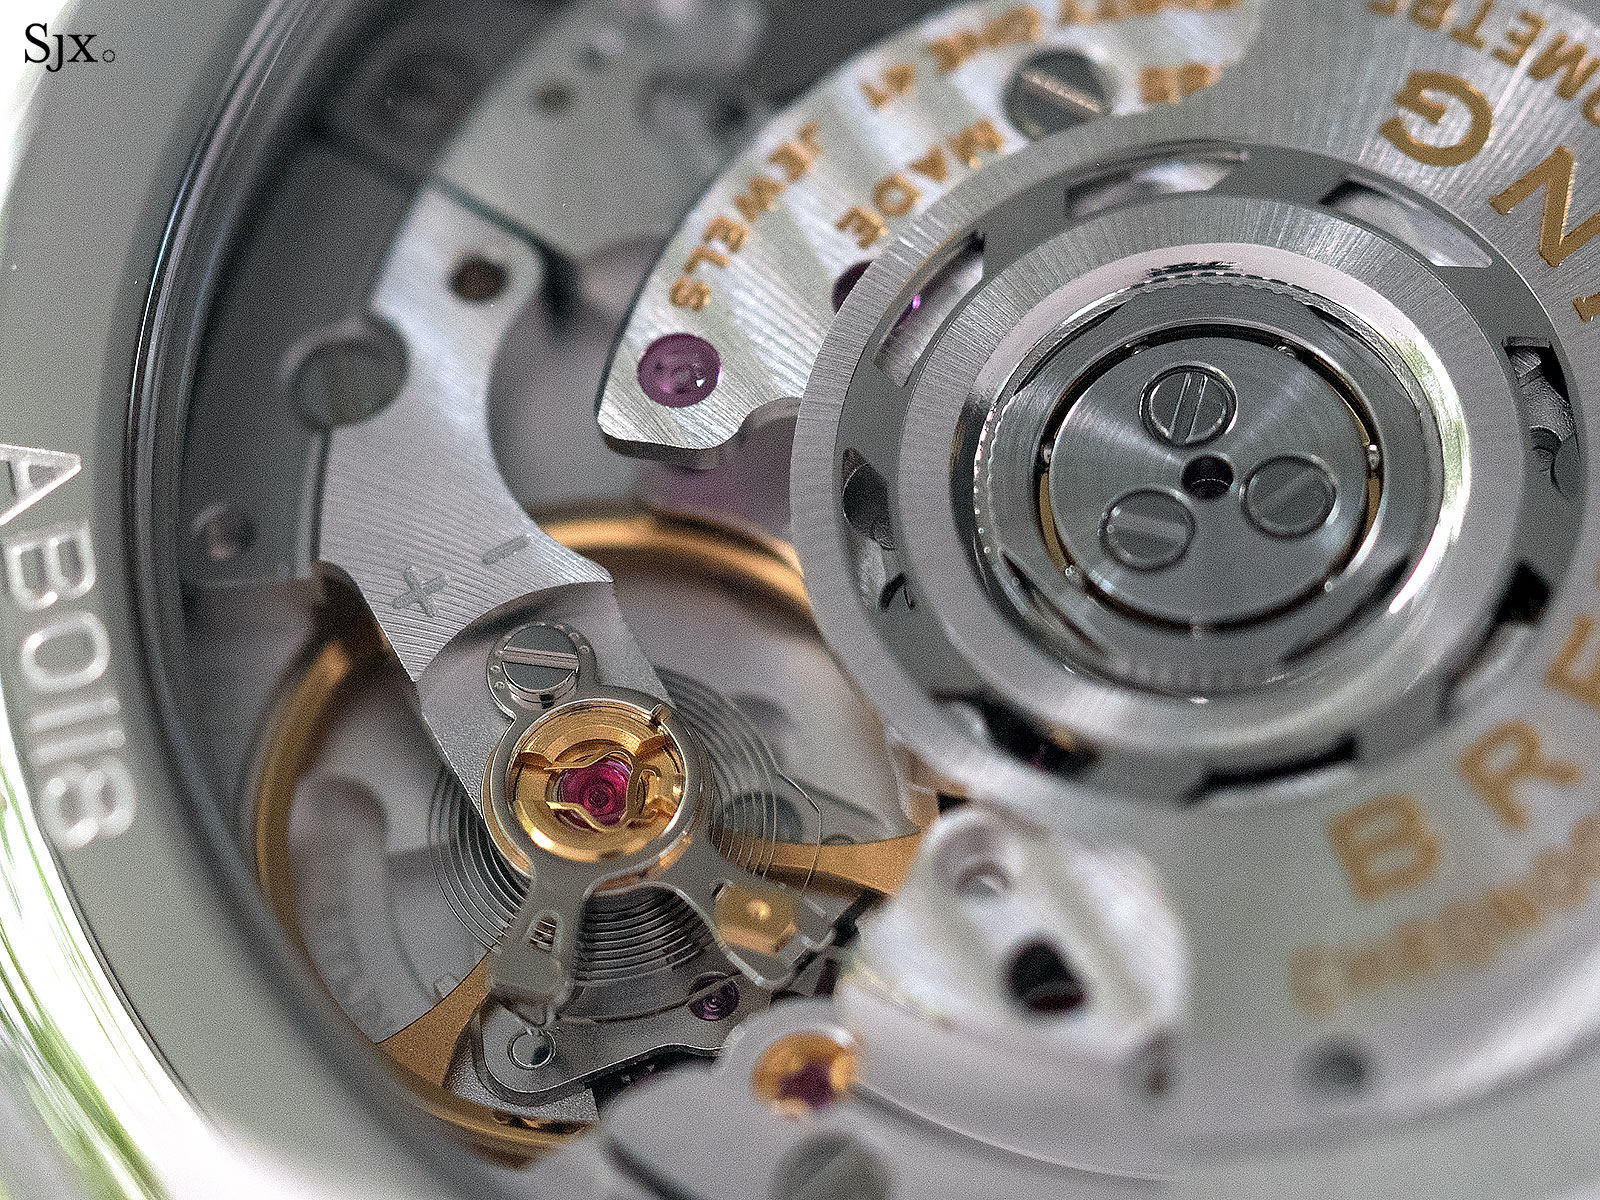 Breitling Premier B01 movement 5